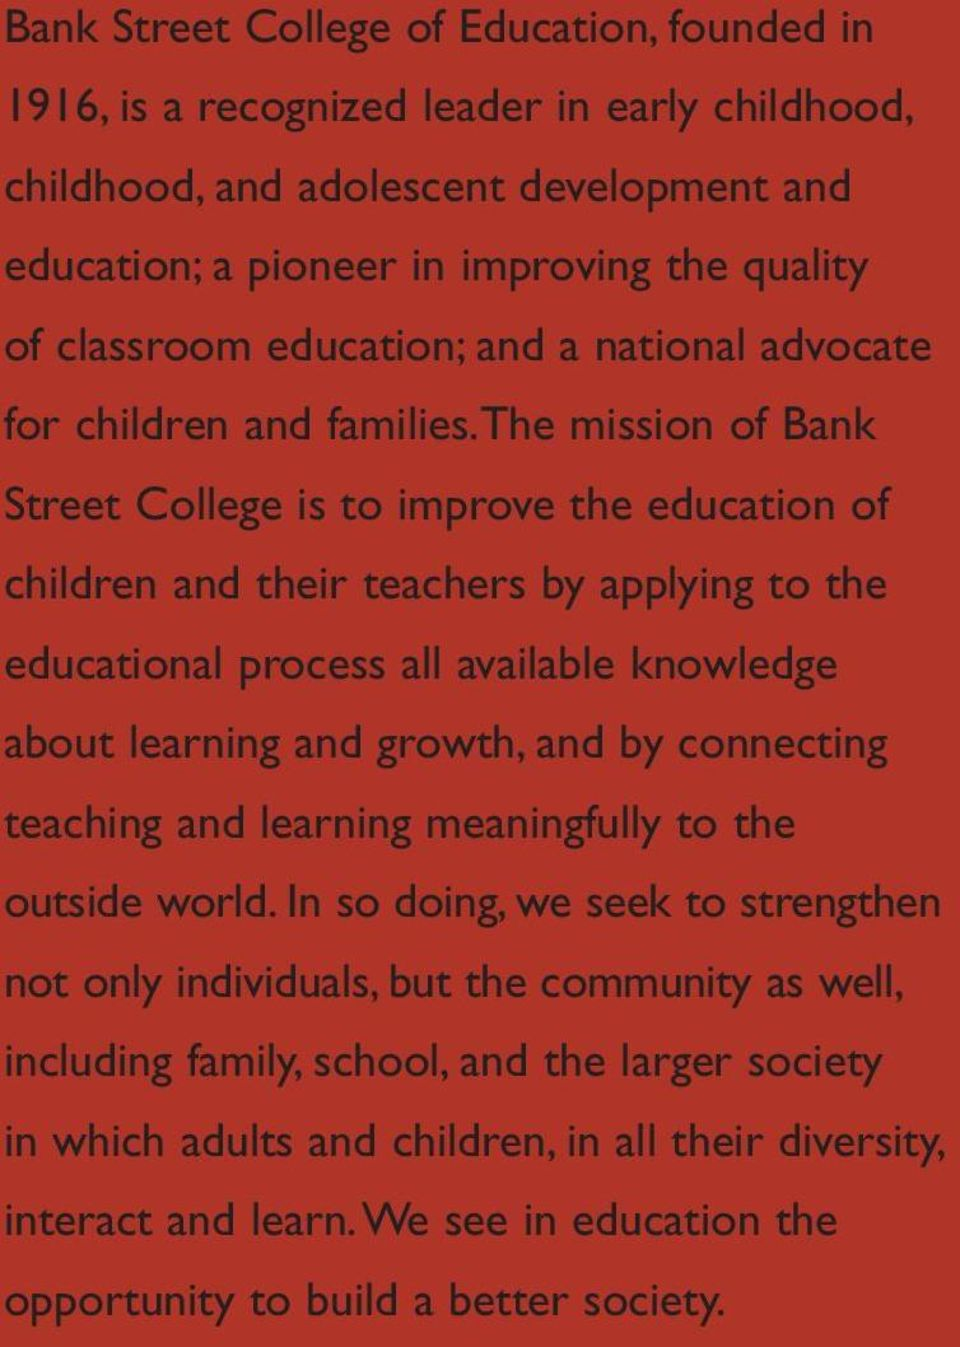 the mission of Bank Street College is to improve the education of children and their teachers by applying to the educational process all available knowledge about learning and growth, and by